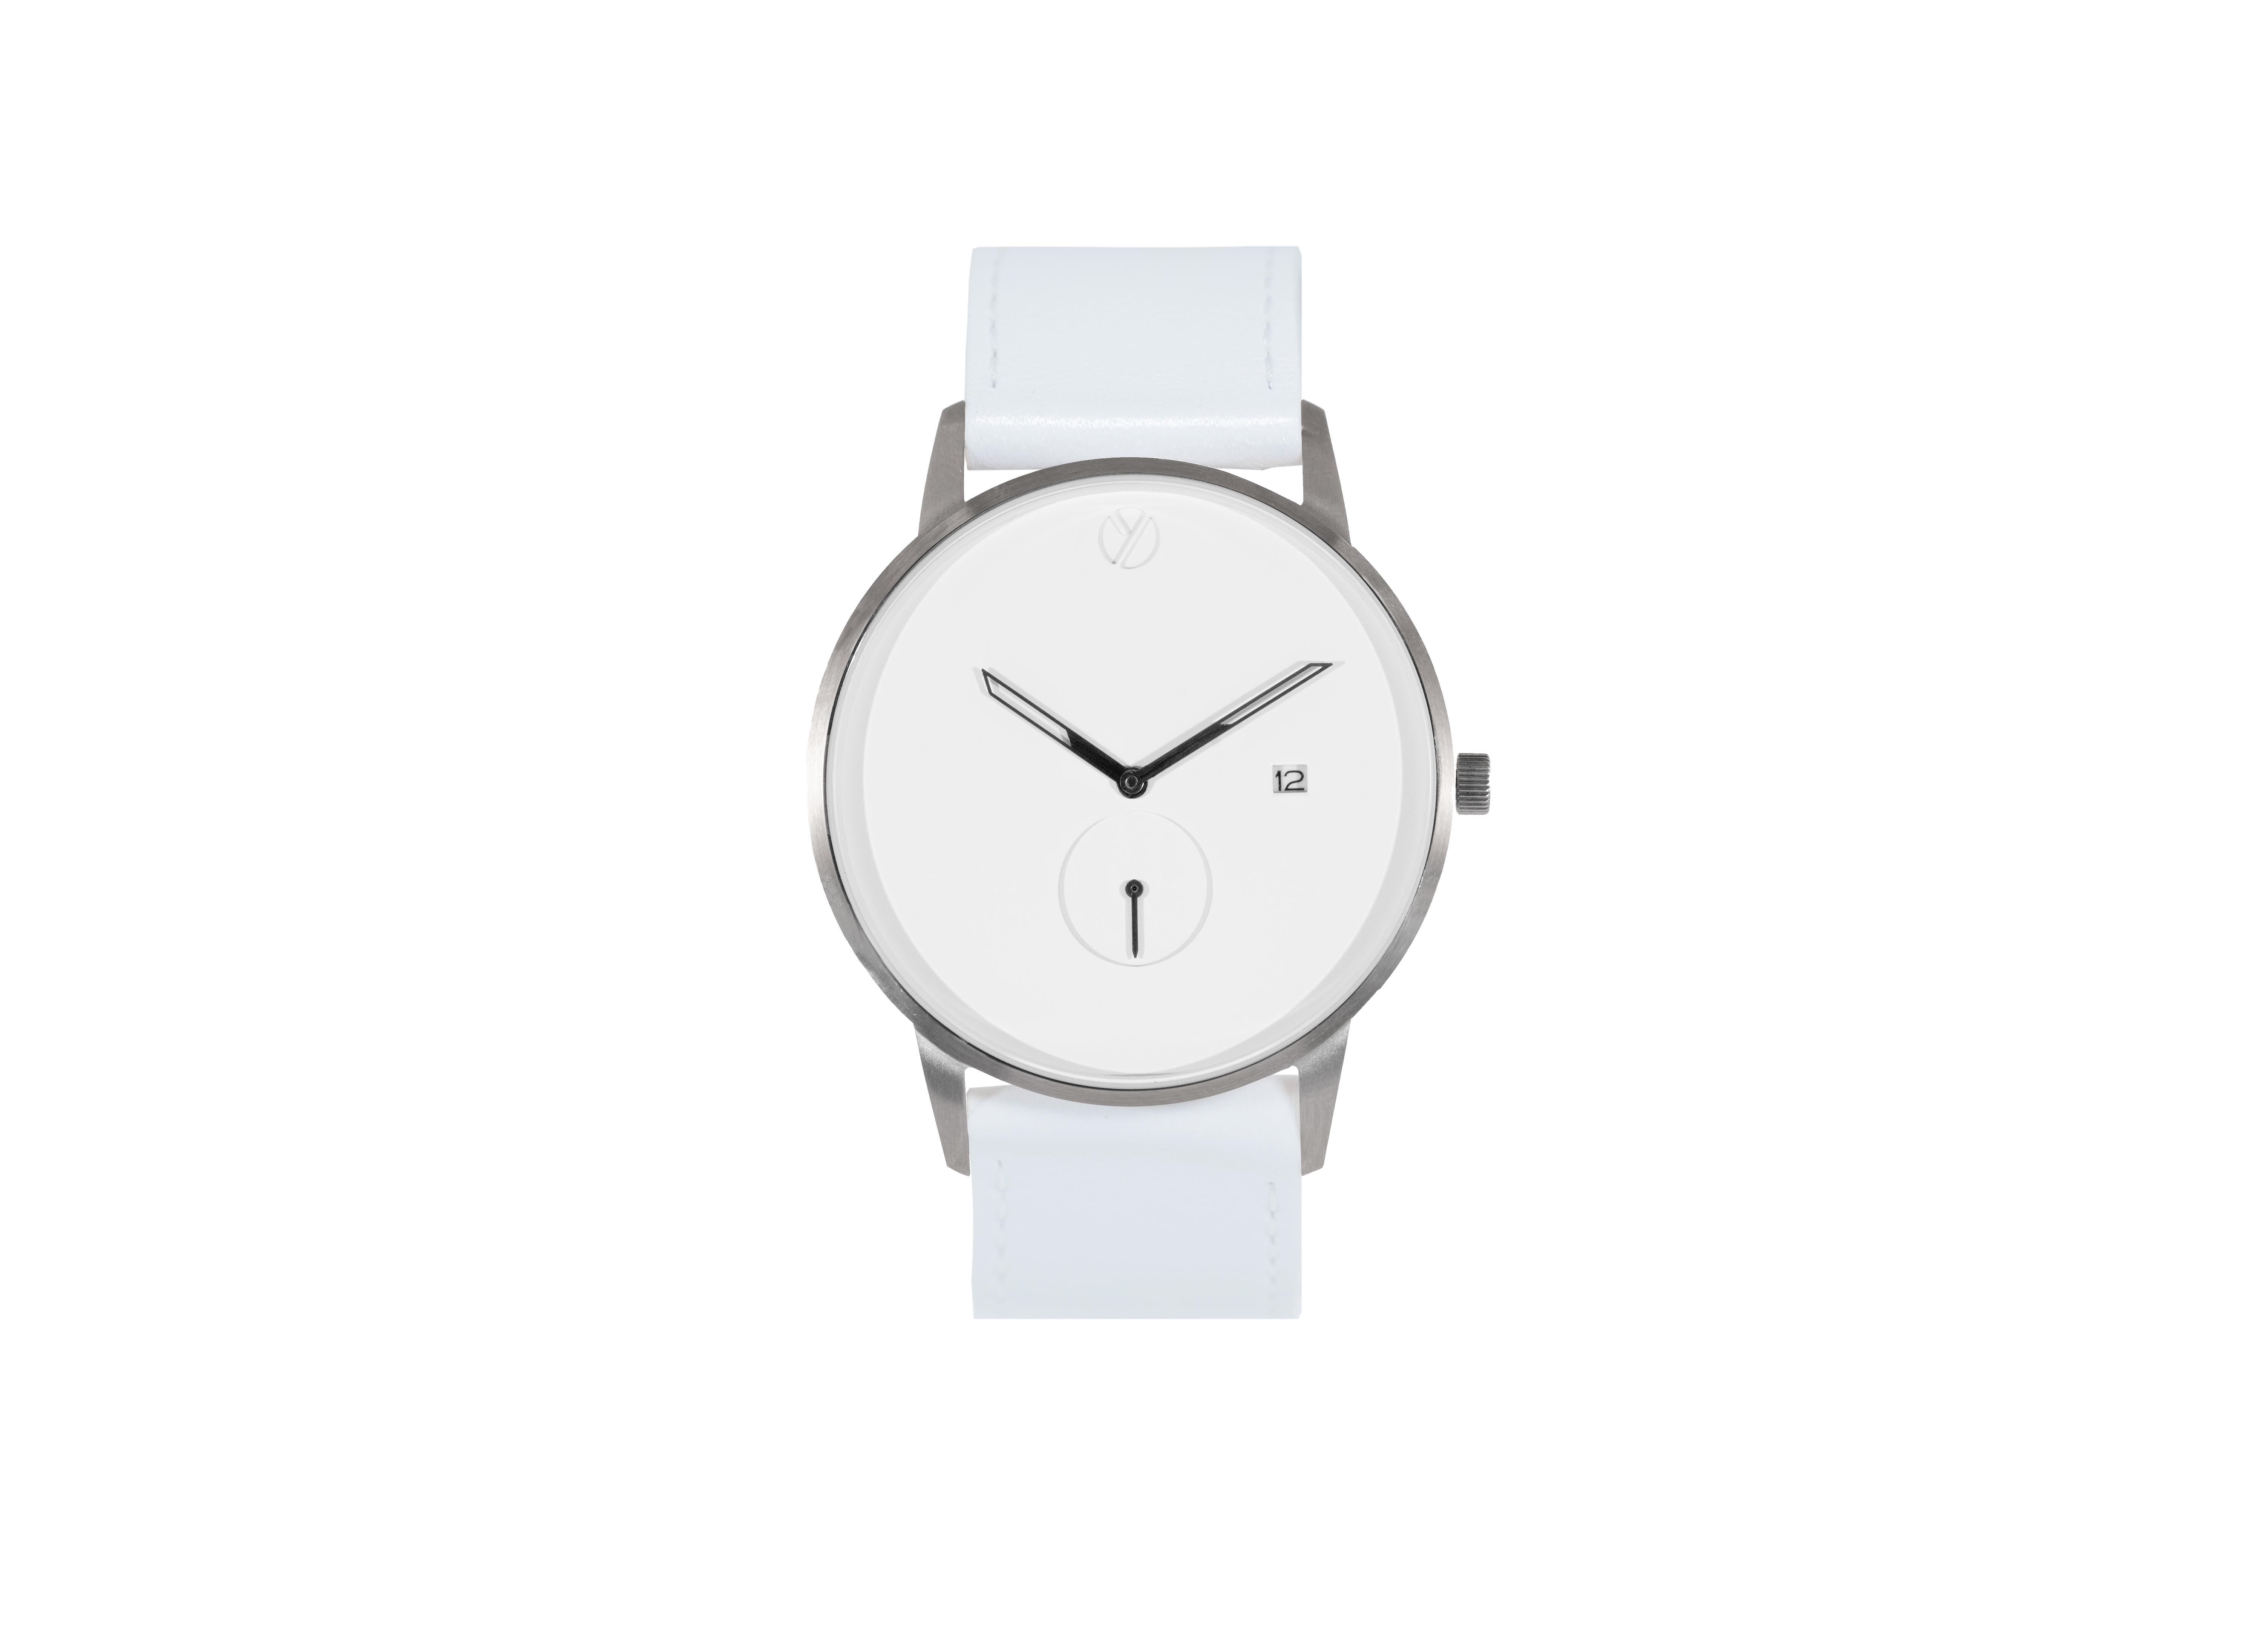 Modernist silver /white watch